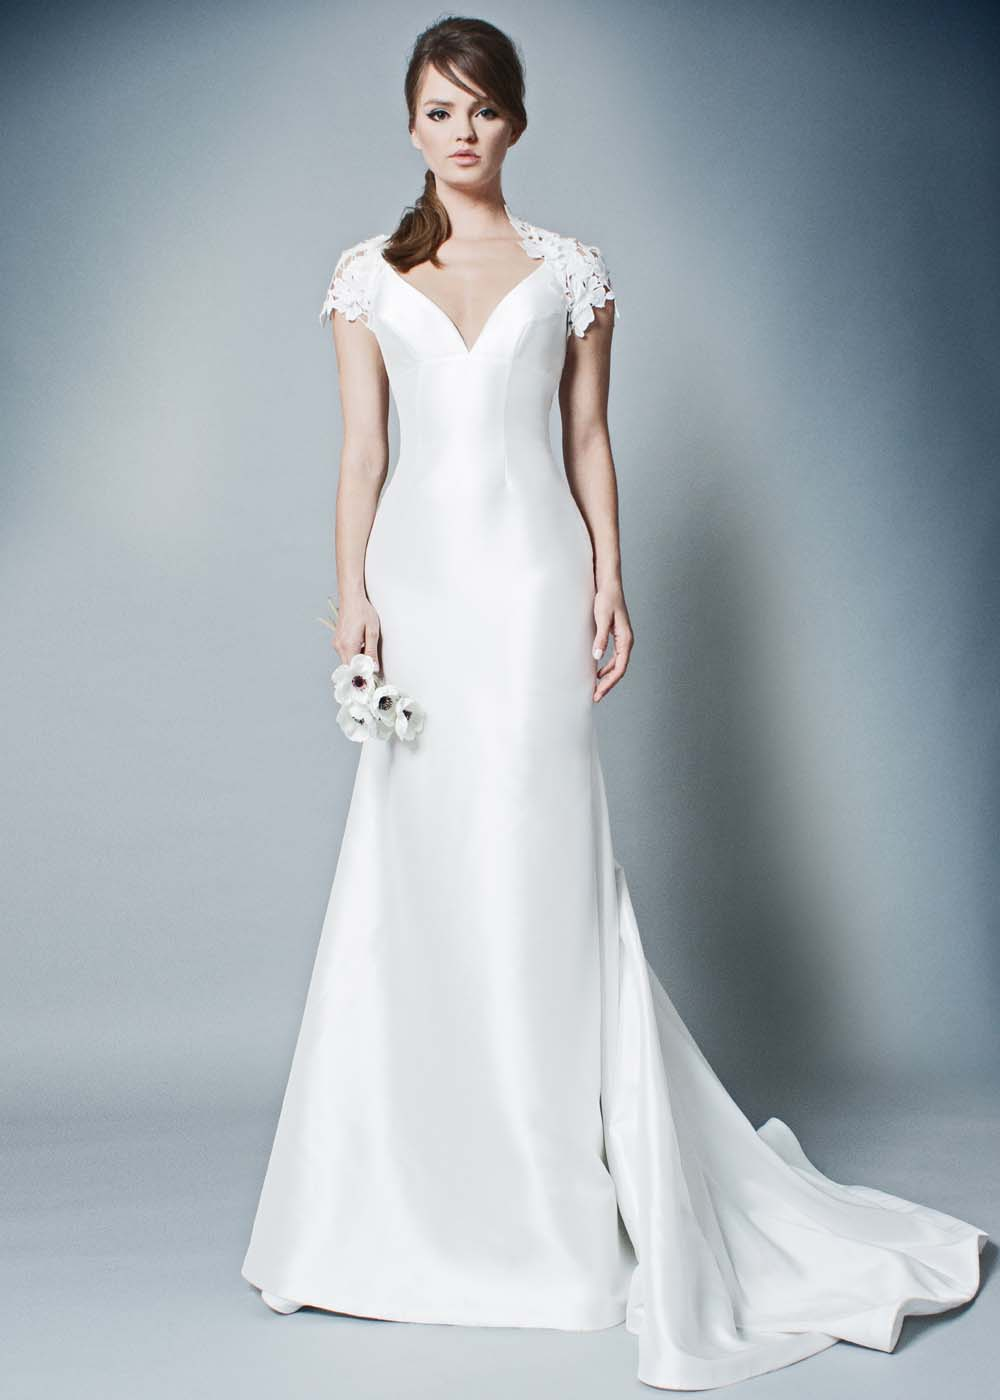 Luxury Bridal Gowns Calgary Gift - All Wedding Dresses ...